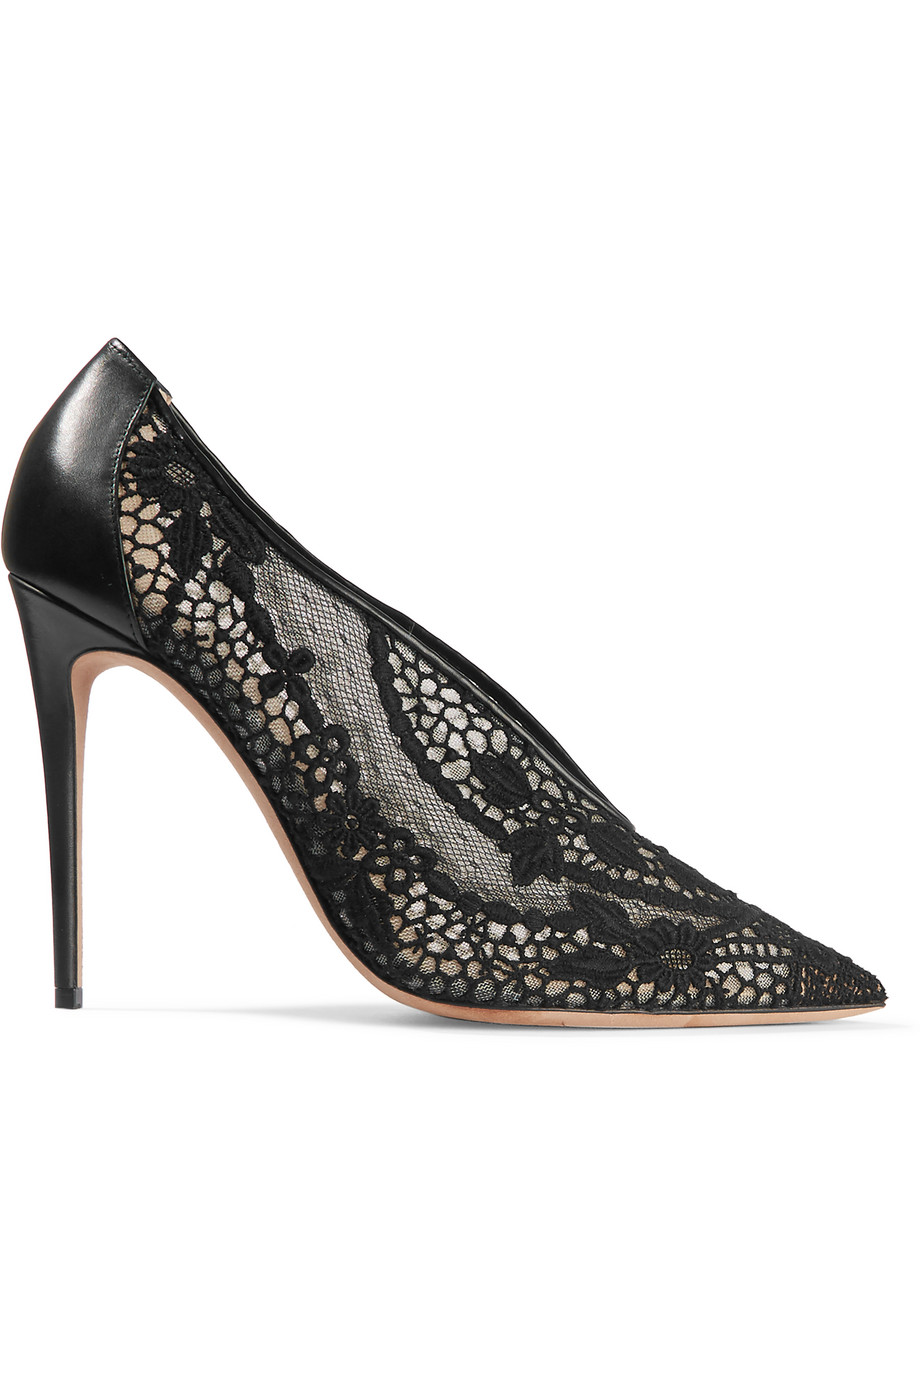 Valentino Leather-Trimmed Guipure Lace Pumps, Black, Women's US Size: 4.5, Size: 35